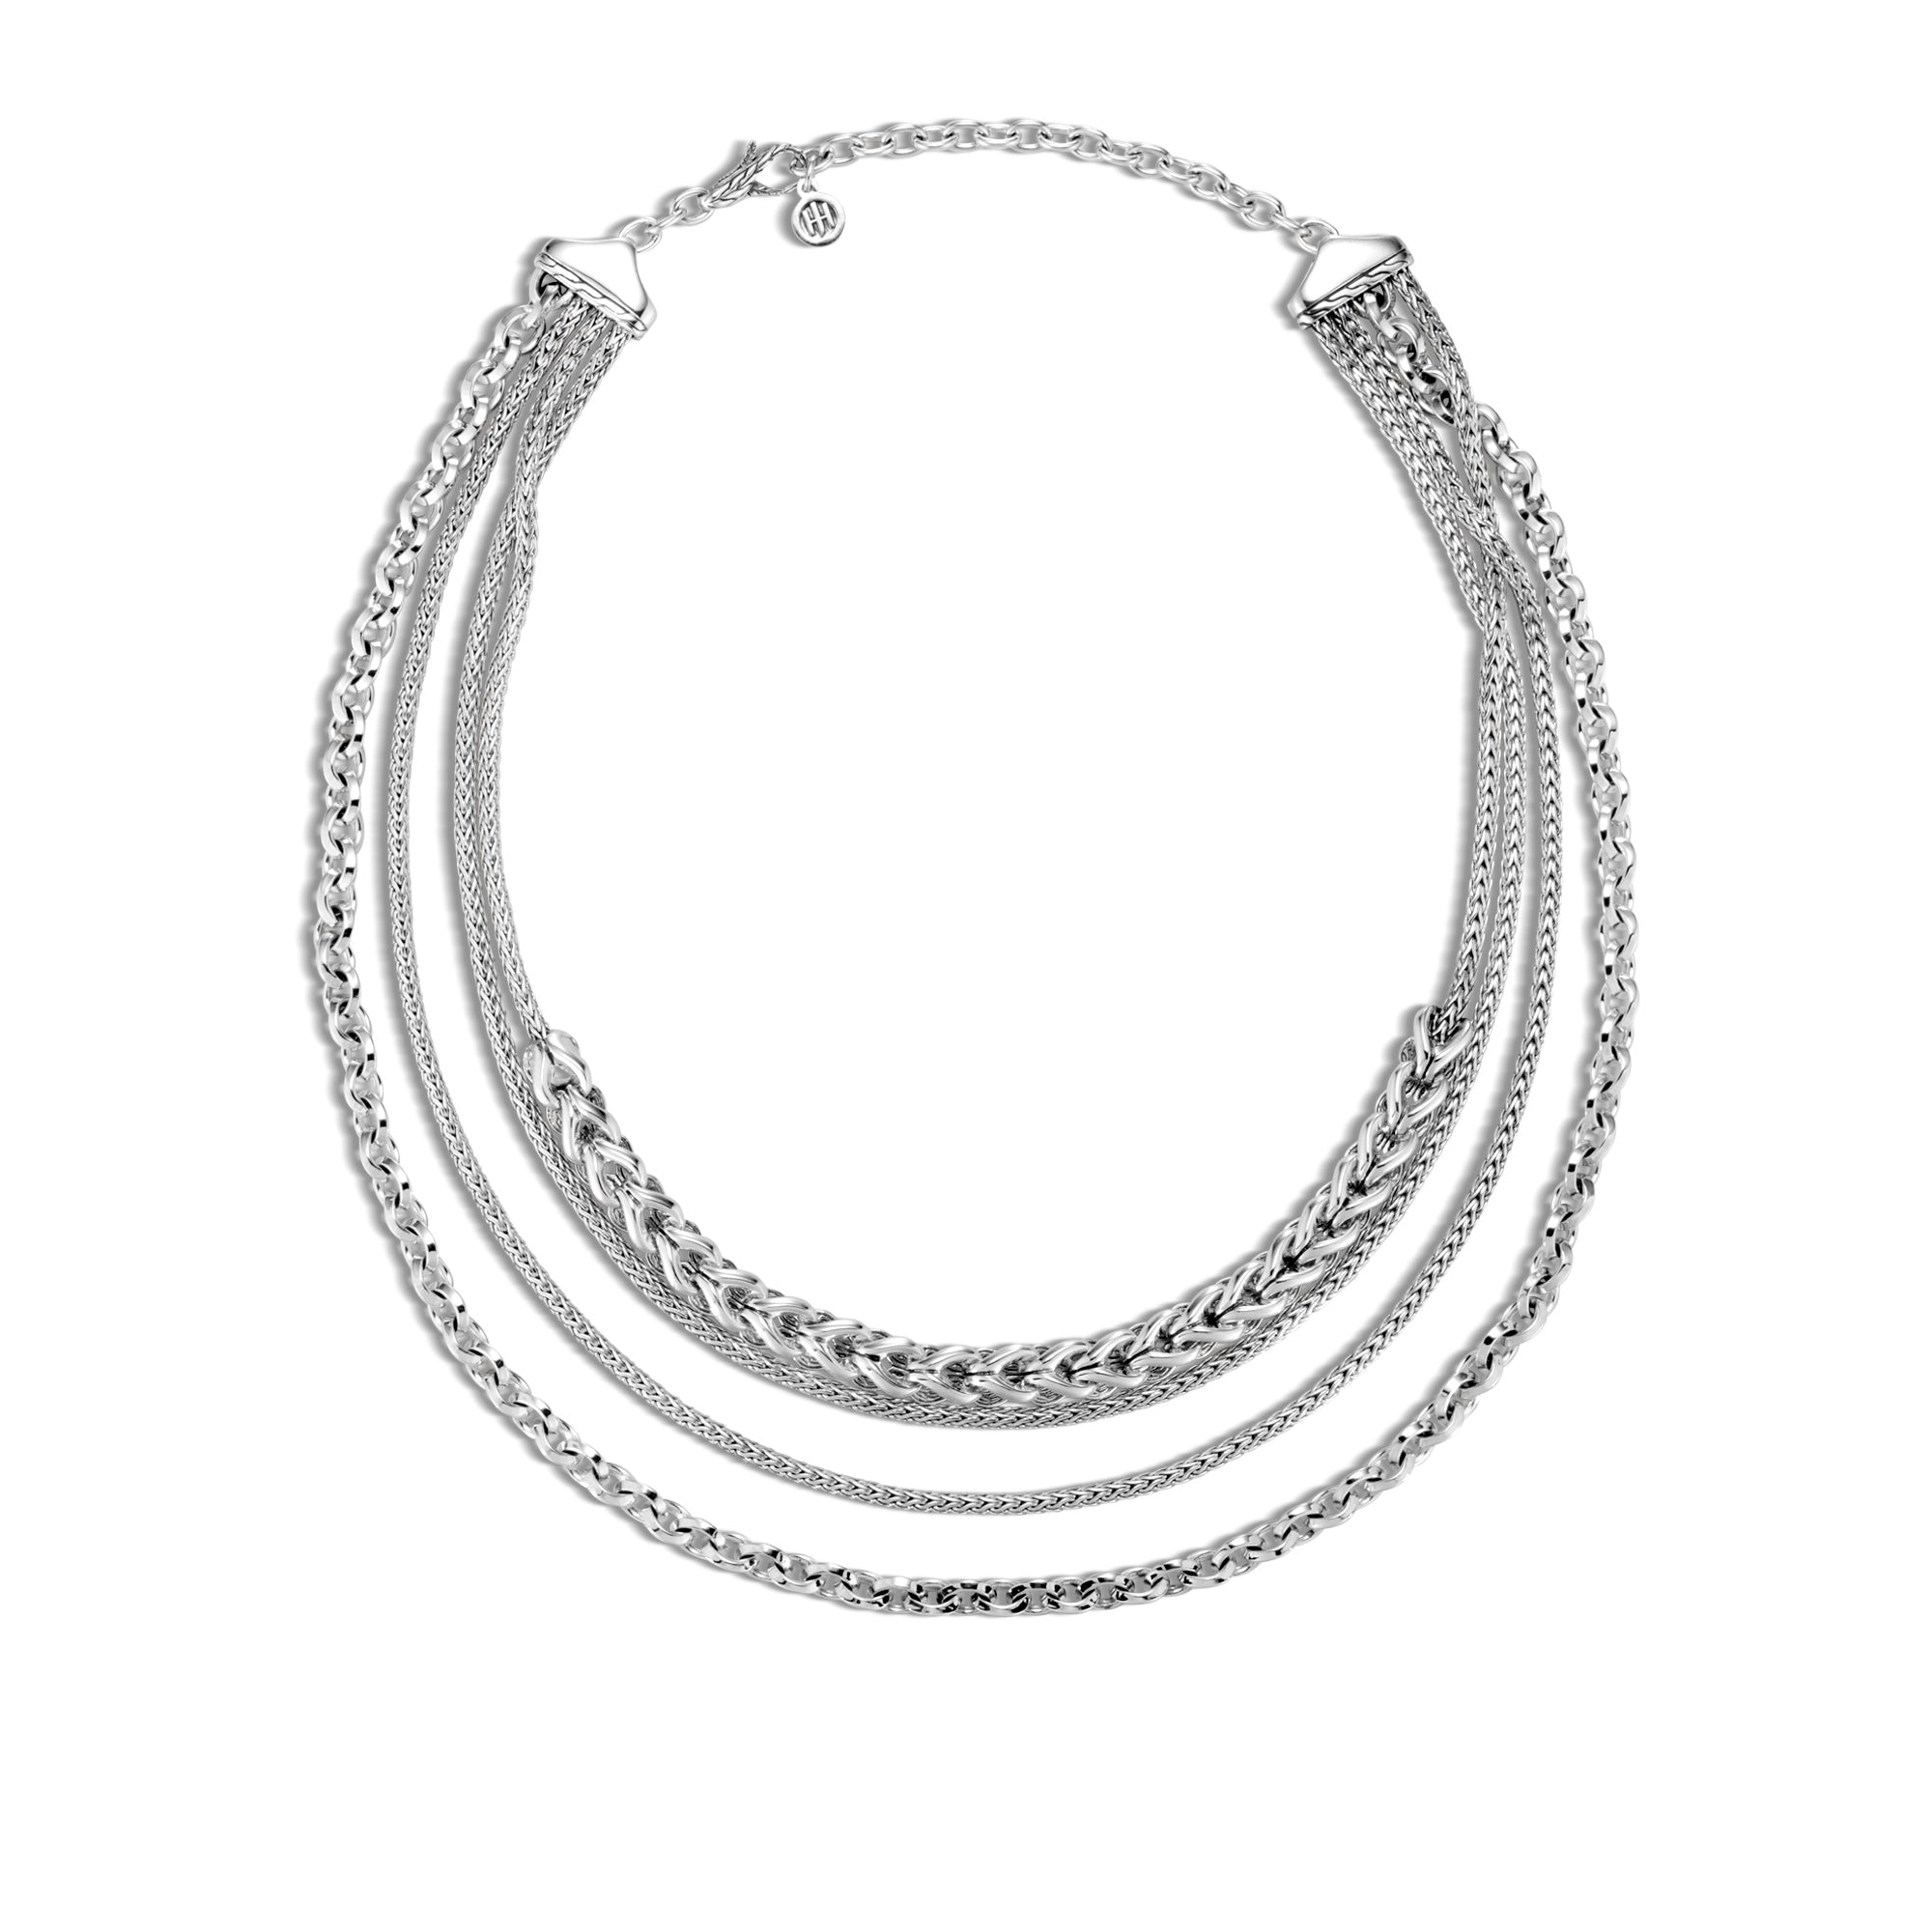 John Hardy Asli Classic Chain Link Multi Row Necklace